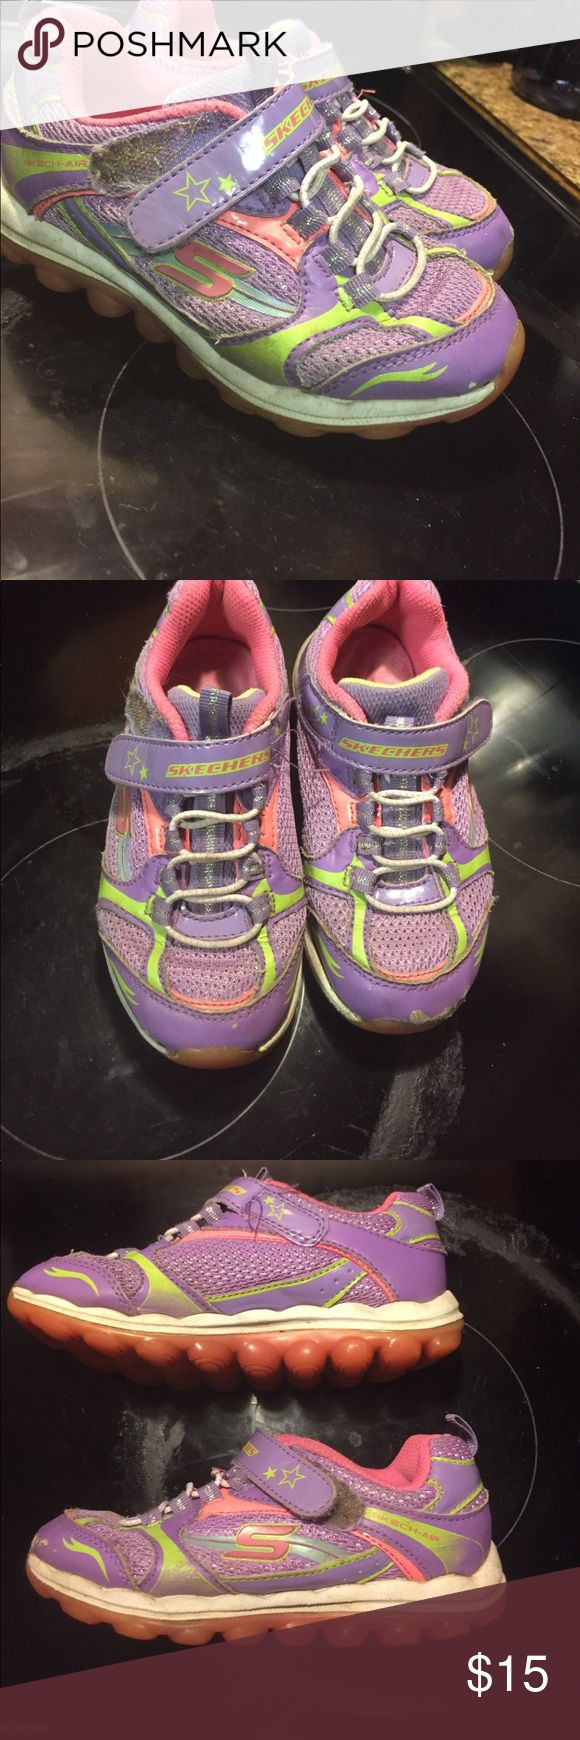 Girls purple/pink Skechers sz 11 Preowned but still in good condition. Very cute lil shoes for your lil girl Skechers Shoes Sneakers